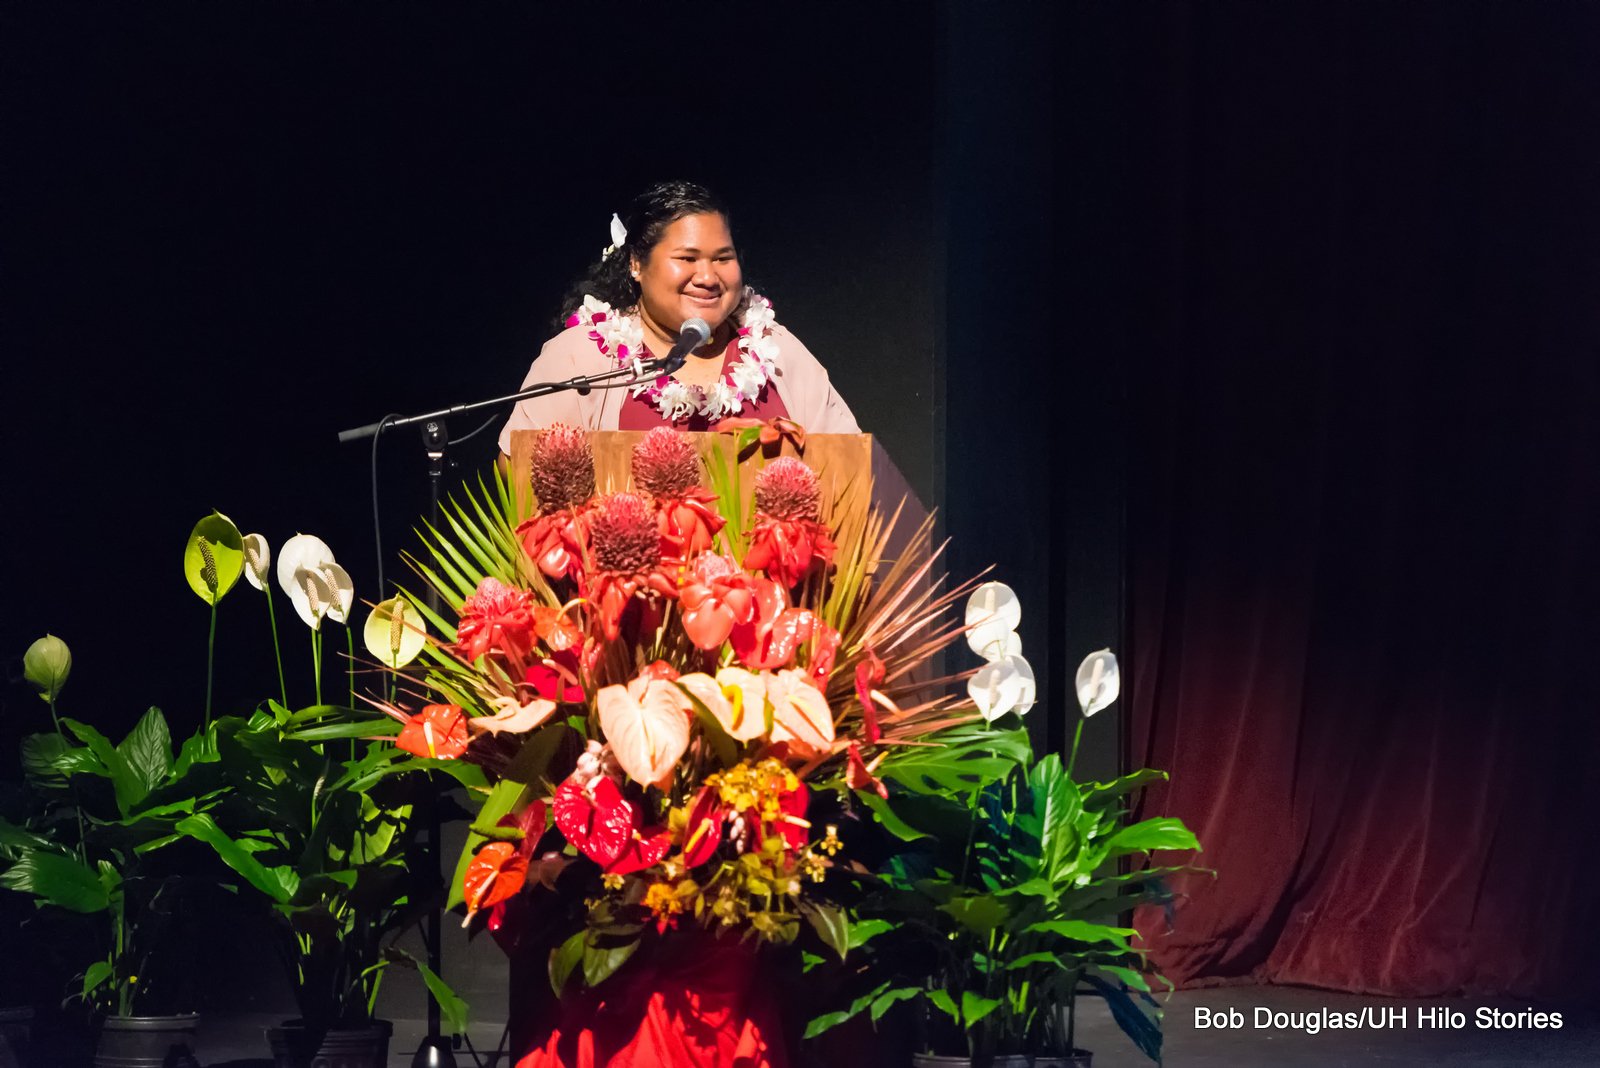 Woman at podium, at mic. Large floral arrangement in front of podium.